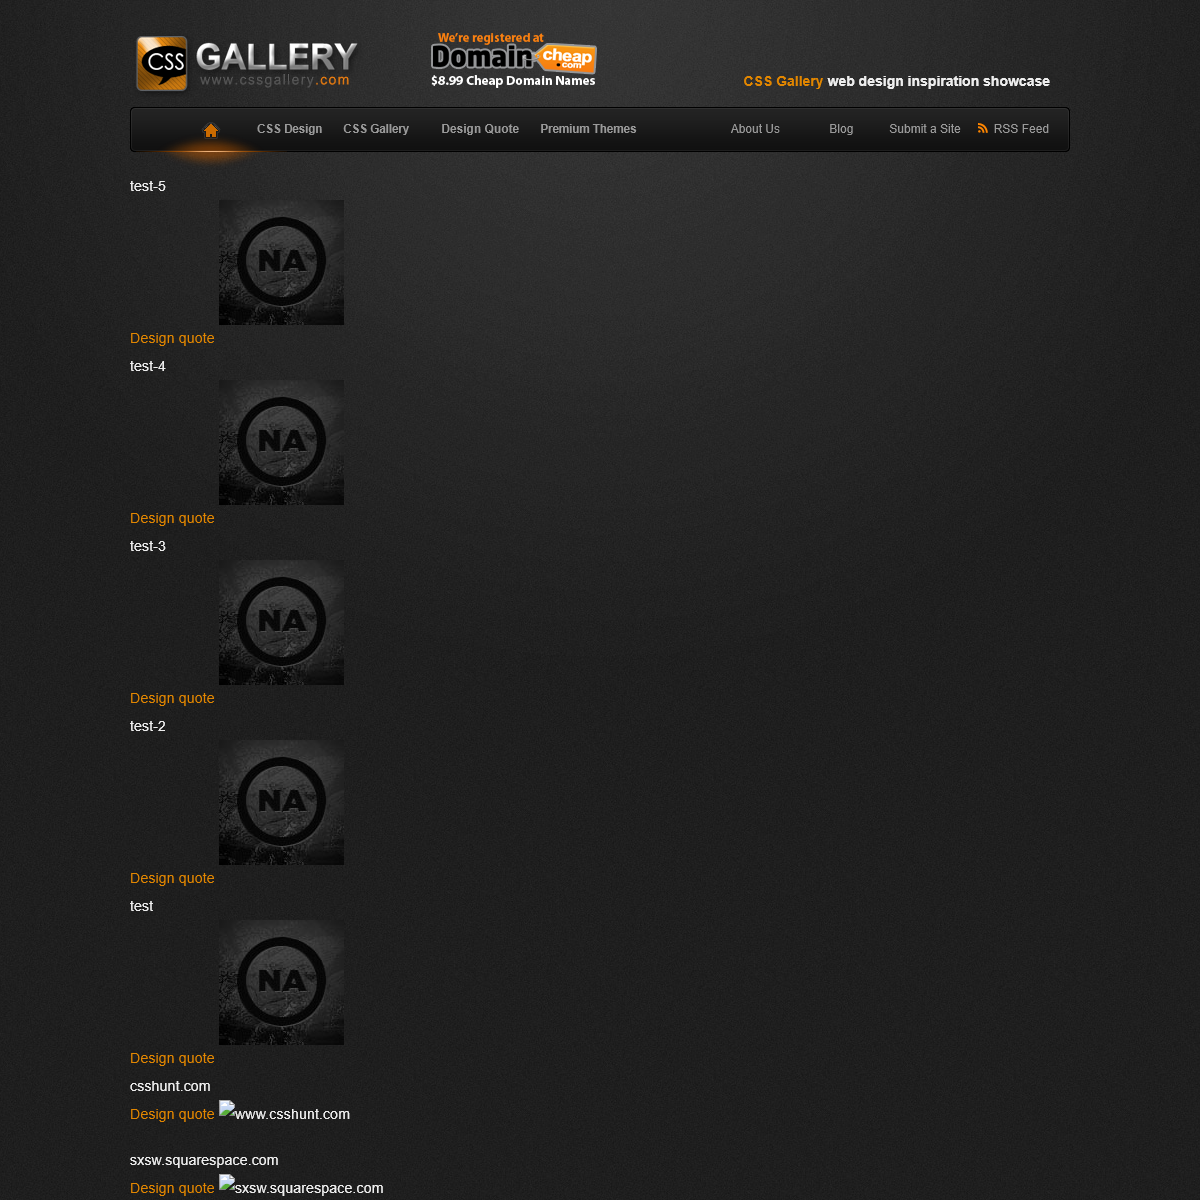 CSS Gallery.com CSS Design and CSS Gallery Showcases TEST to FLASHLIGHT - FULLSCREEN BACKGROUND PORTFOLIO THEME the Best CSS Gal